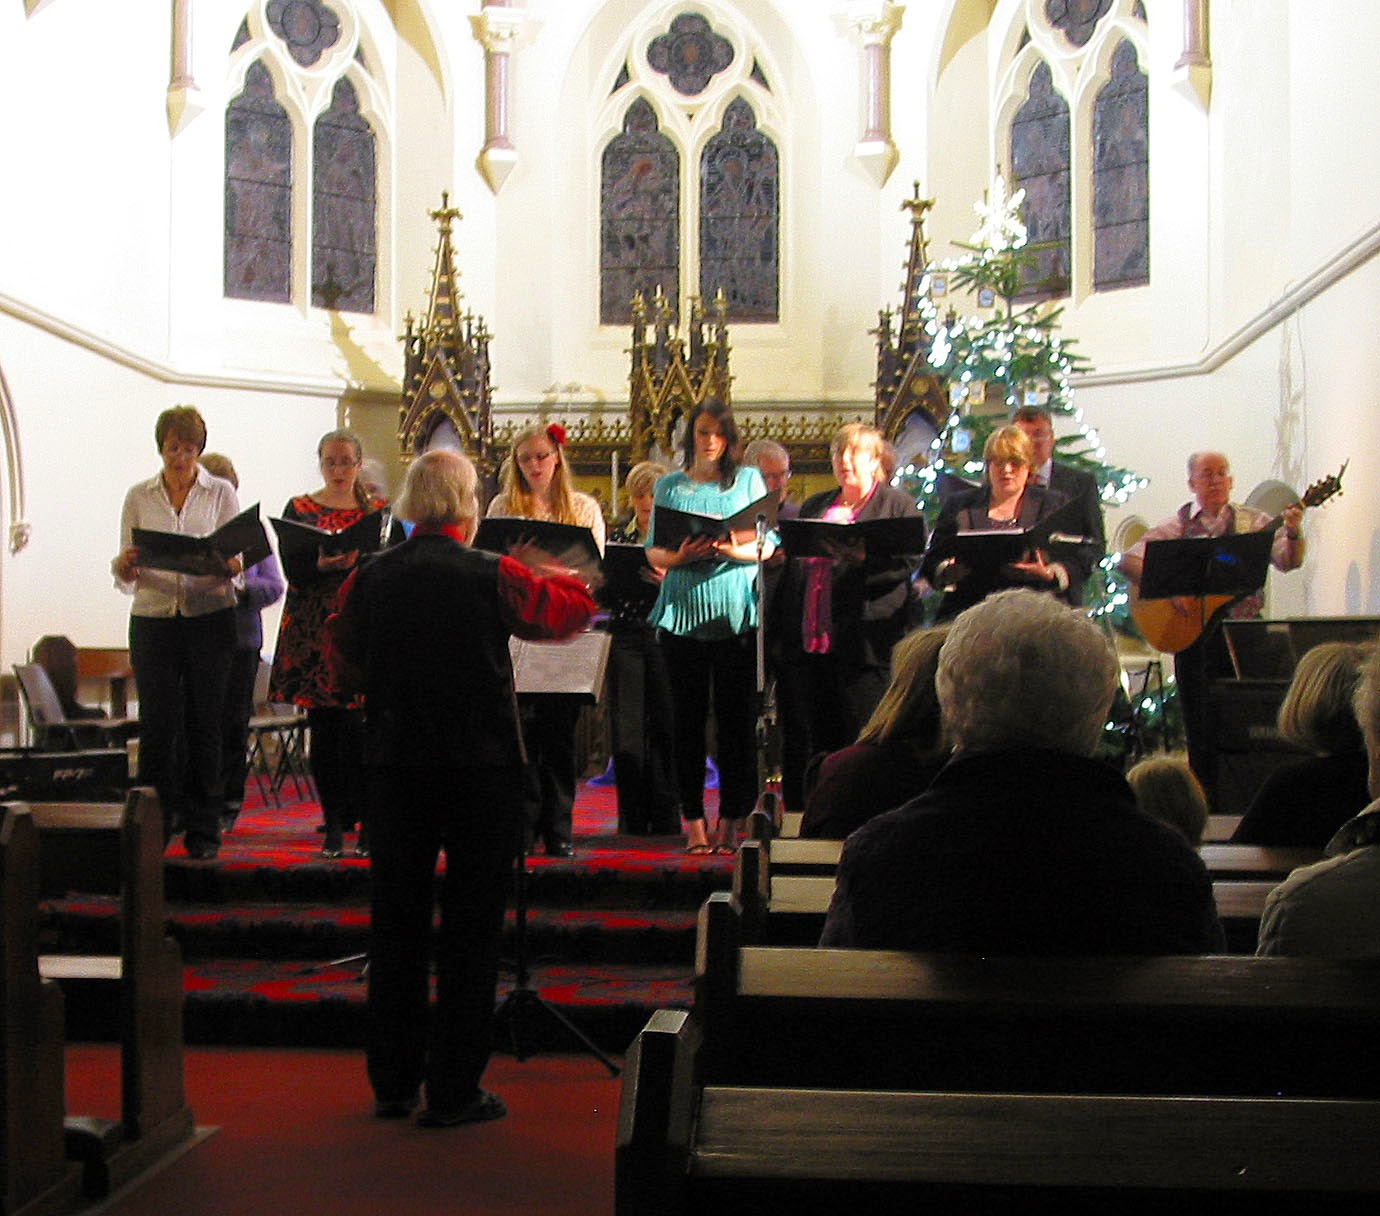 Photo: The Choir Bill Barr, Jessica Coyle, Joanne Coyle, Shannon Coyle, Dan Devlin, Leo Franey (Choir Master), Sarah Franey, Sheila Franey, Maureen Hayley, Eileen Horan, Tony Long, Marian McGowan, Sheila Vasey and Karin Weetman conducted by John Childs Performed in three sets O Come All Ye Faithful, Rejoice Rejoice, Coventry Carol, The Little Drummer Boy / Peace On Earth, Carol of the Bells, Deck the Halls, Gaudete, Stille Nacht, Sleigh Ride, White Christmas, Hark! the Herald Angels Sing, and Have Yourself a Merry Little Christmas